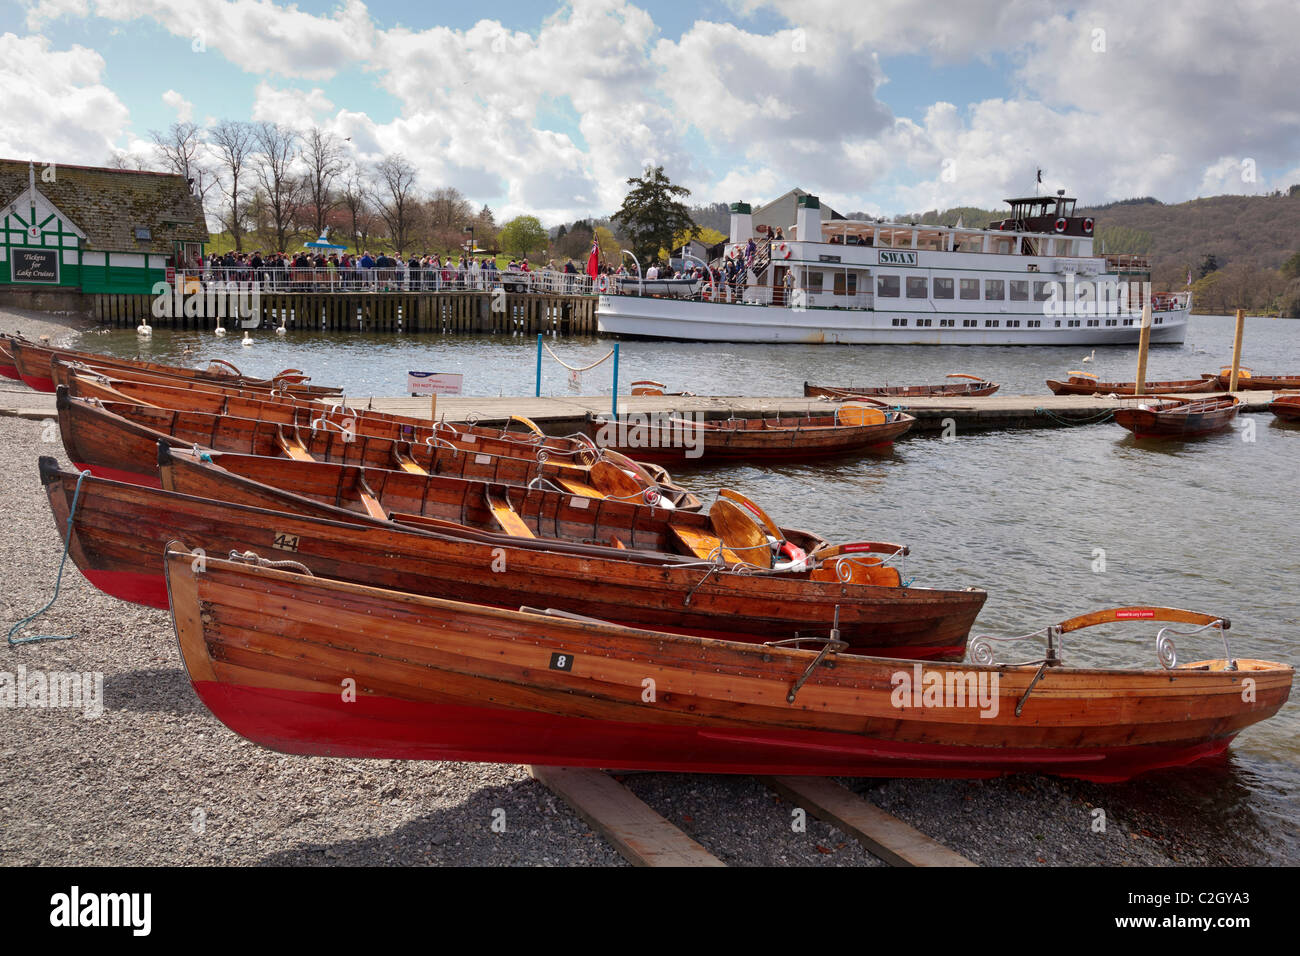 The pier at Bowness on Windermere in the lake district  with the steamer Swan and rowing boats. - Stock Image